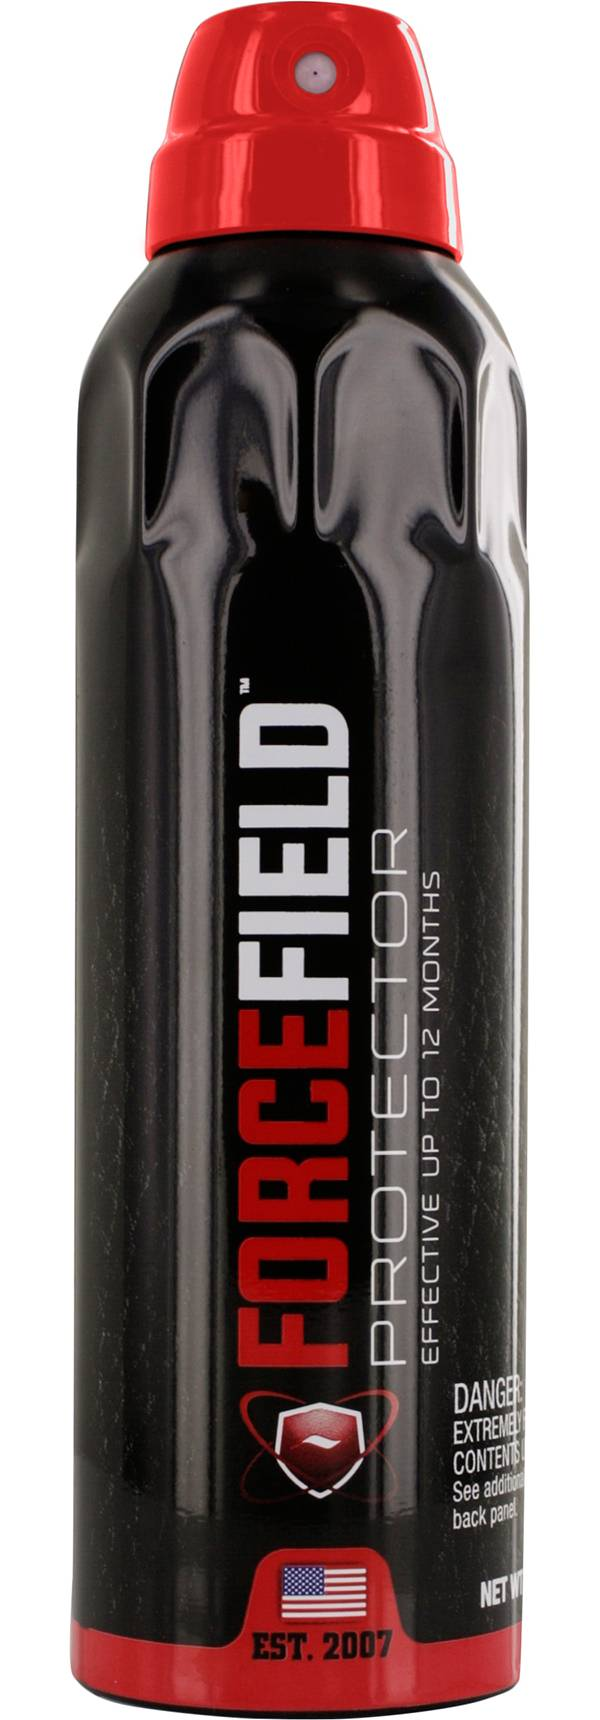 ForceField Shoe Protector product image